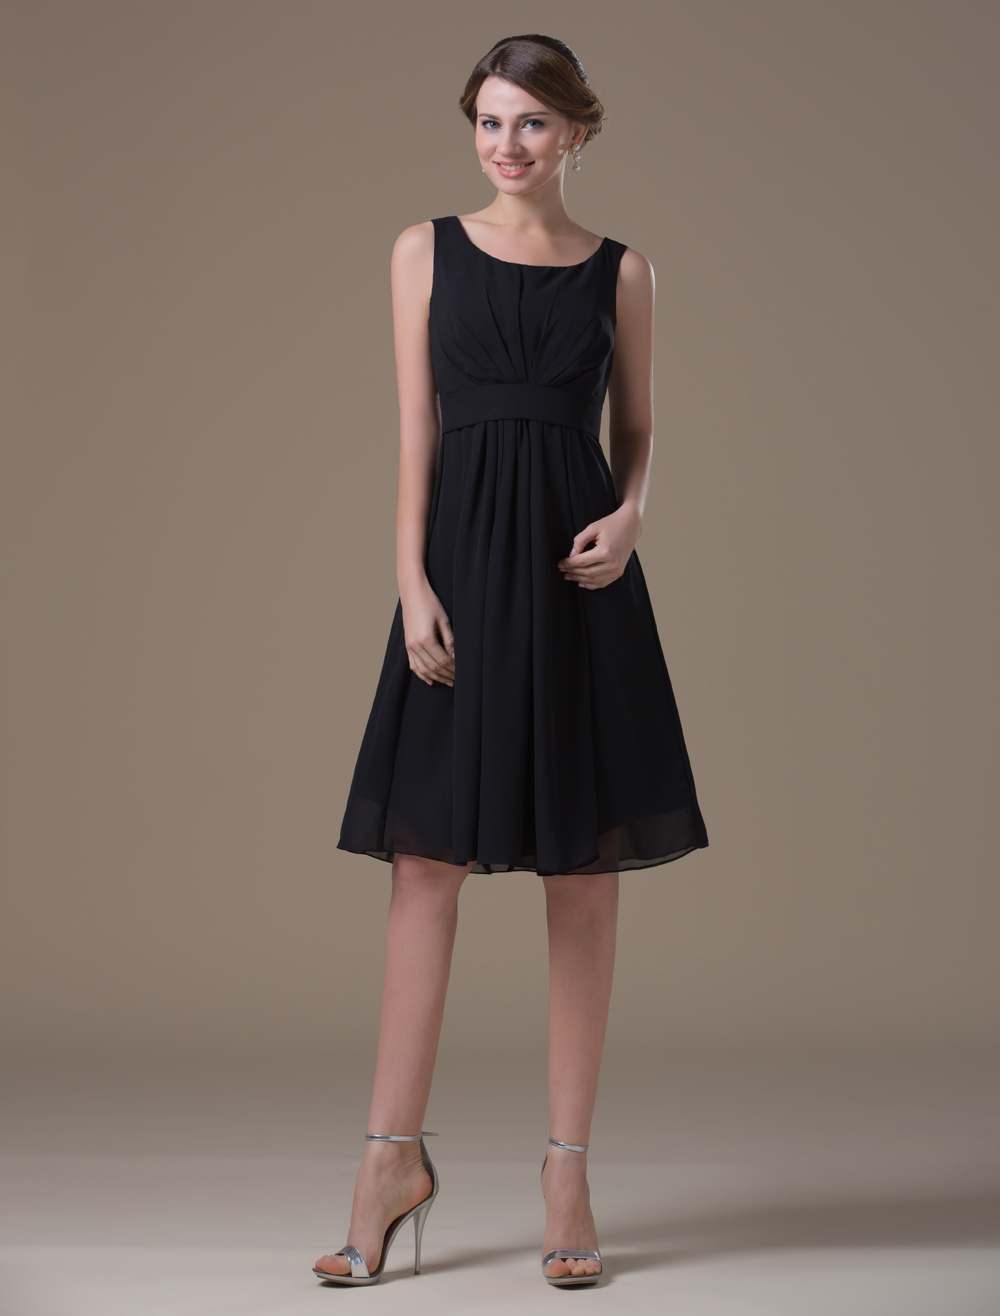 Black Chiffon Tea Length Maternity Bridesmaid Dress